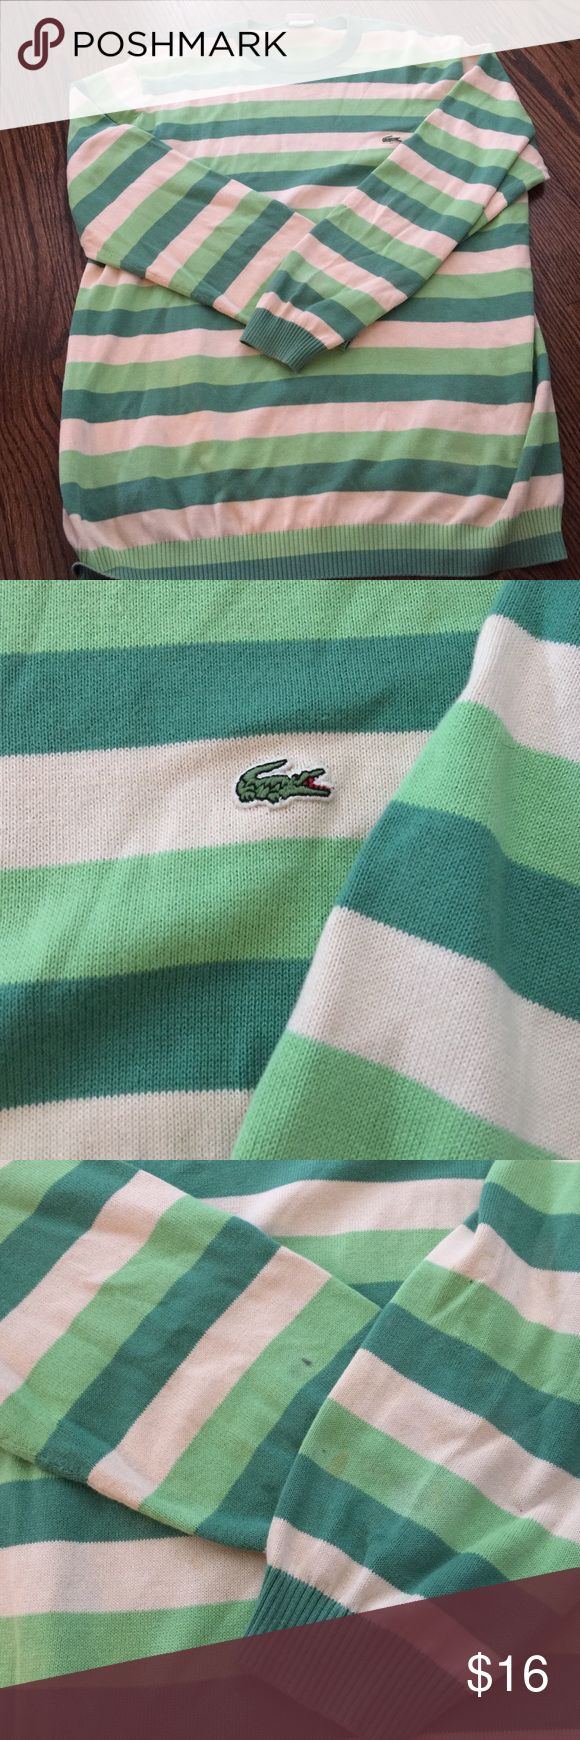 Green stripes Lacoste sweater Multi green stripe Lacoste sweater.  Has a few rice size stains and a small discoloration as shown in last picture.  No major wear and or tears.  Great long comfy sweater for women or medium sized for men Lacoste Sweaters Crewneck